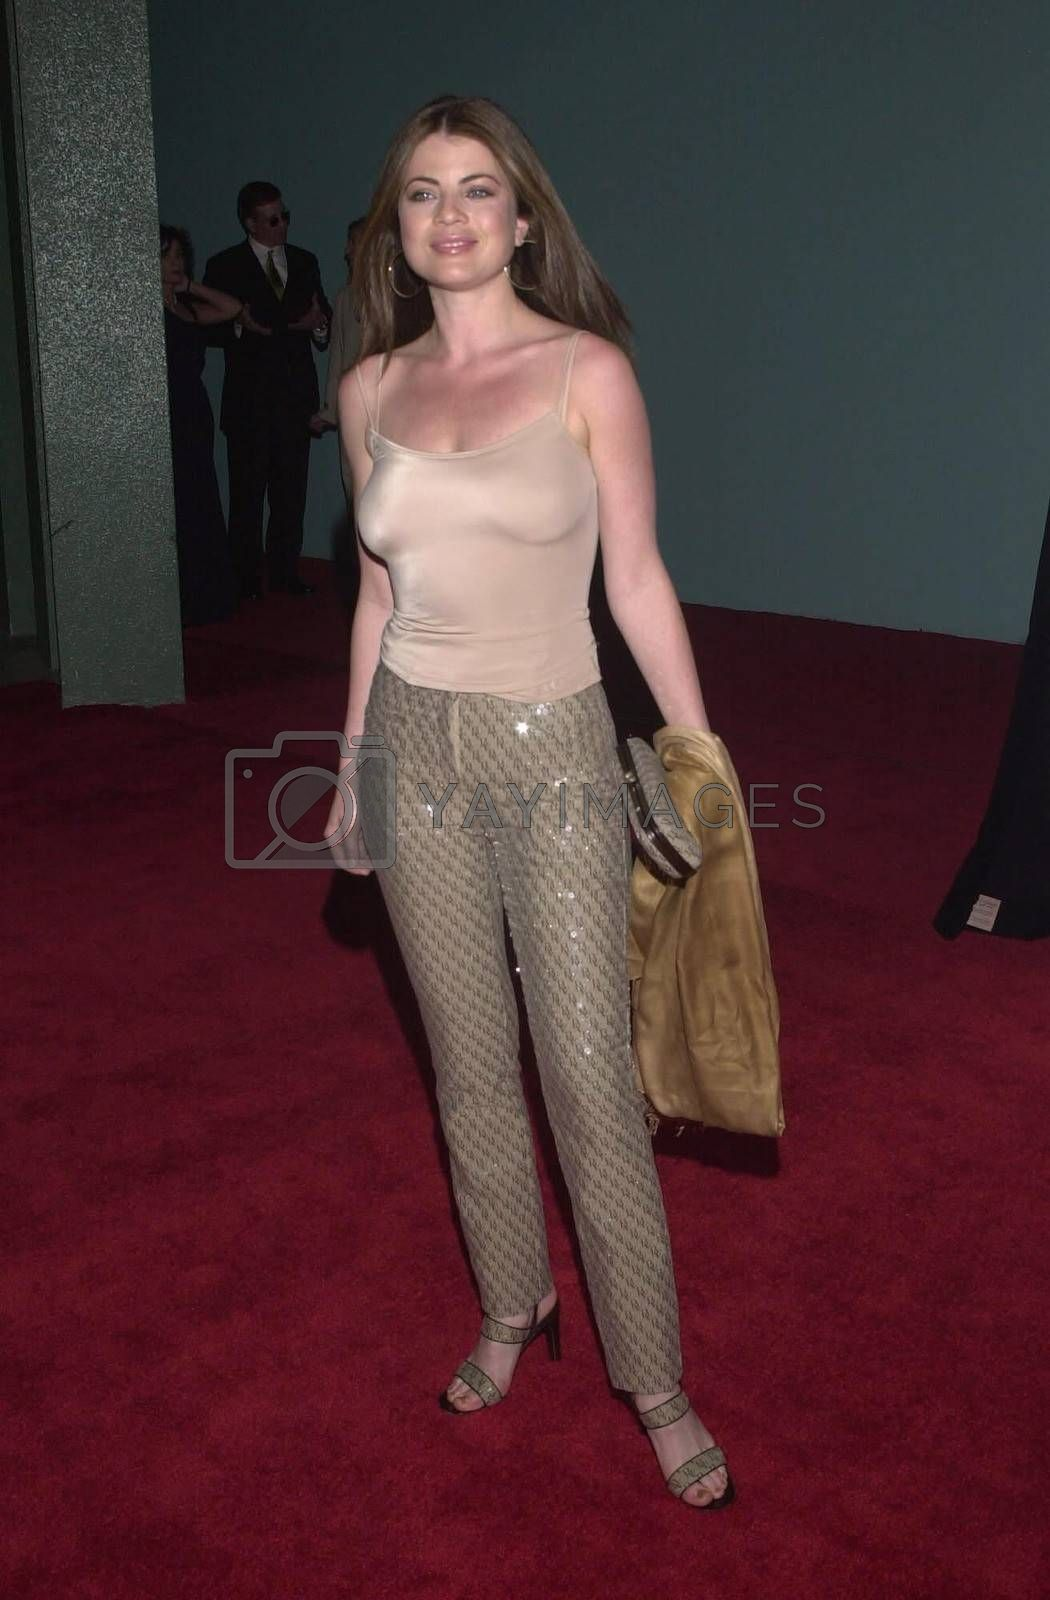 Yasmine Bleeth at the 2nd Annual ALS Benefit at the Hollywood Palladium, 04-10-00